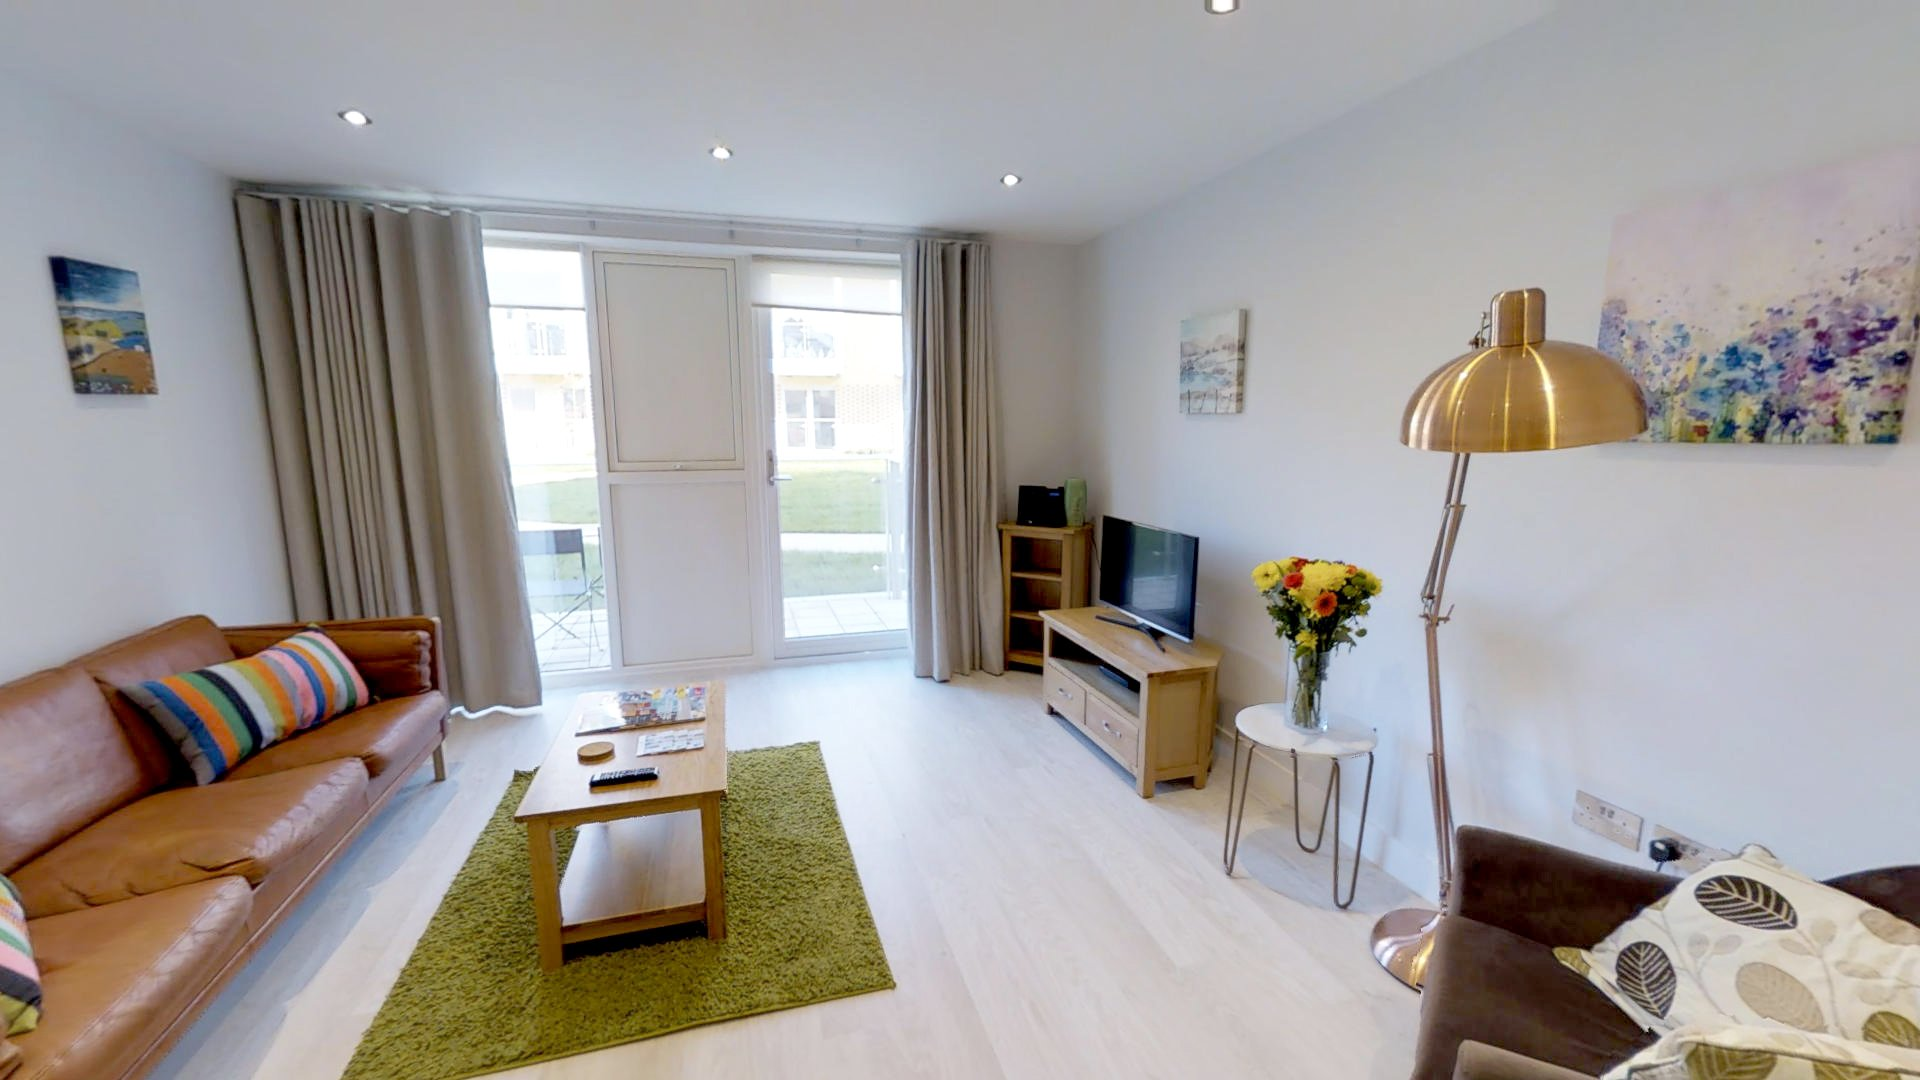 Ceres - a serviced studio apartment in central Cambridge.